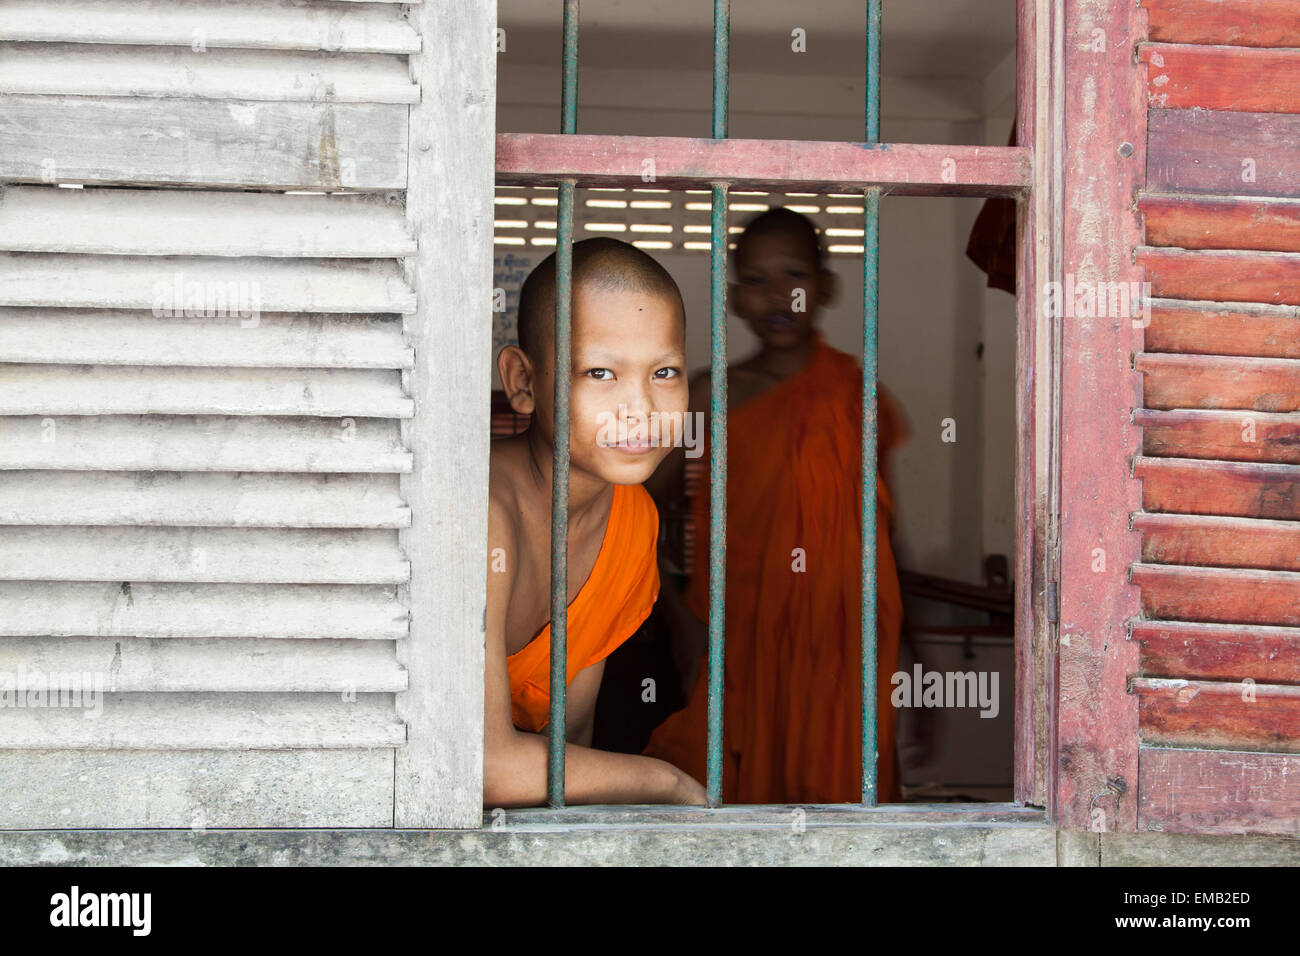 A young Buddhist monk looking through window. - Stock Image